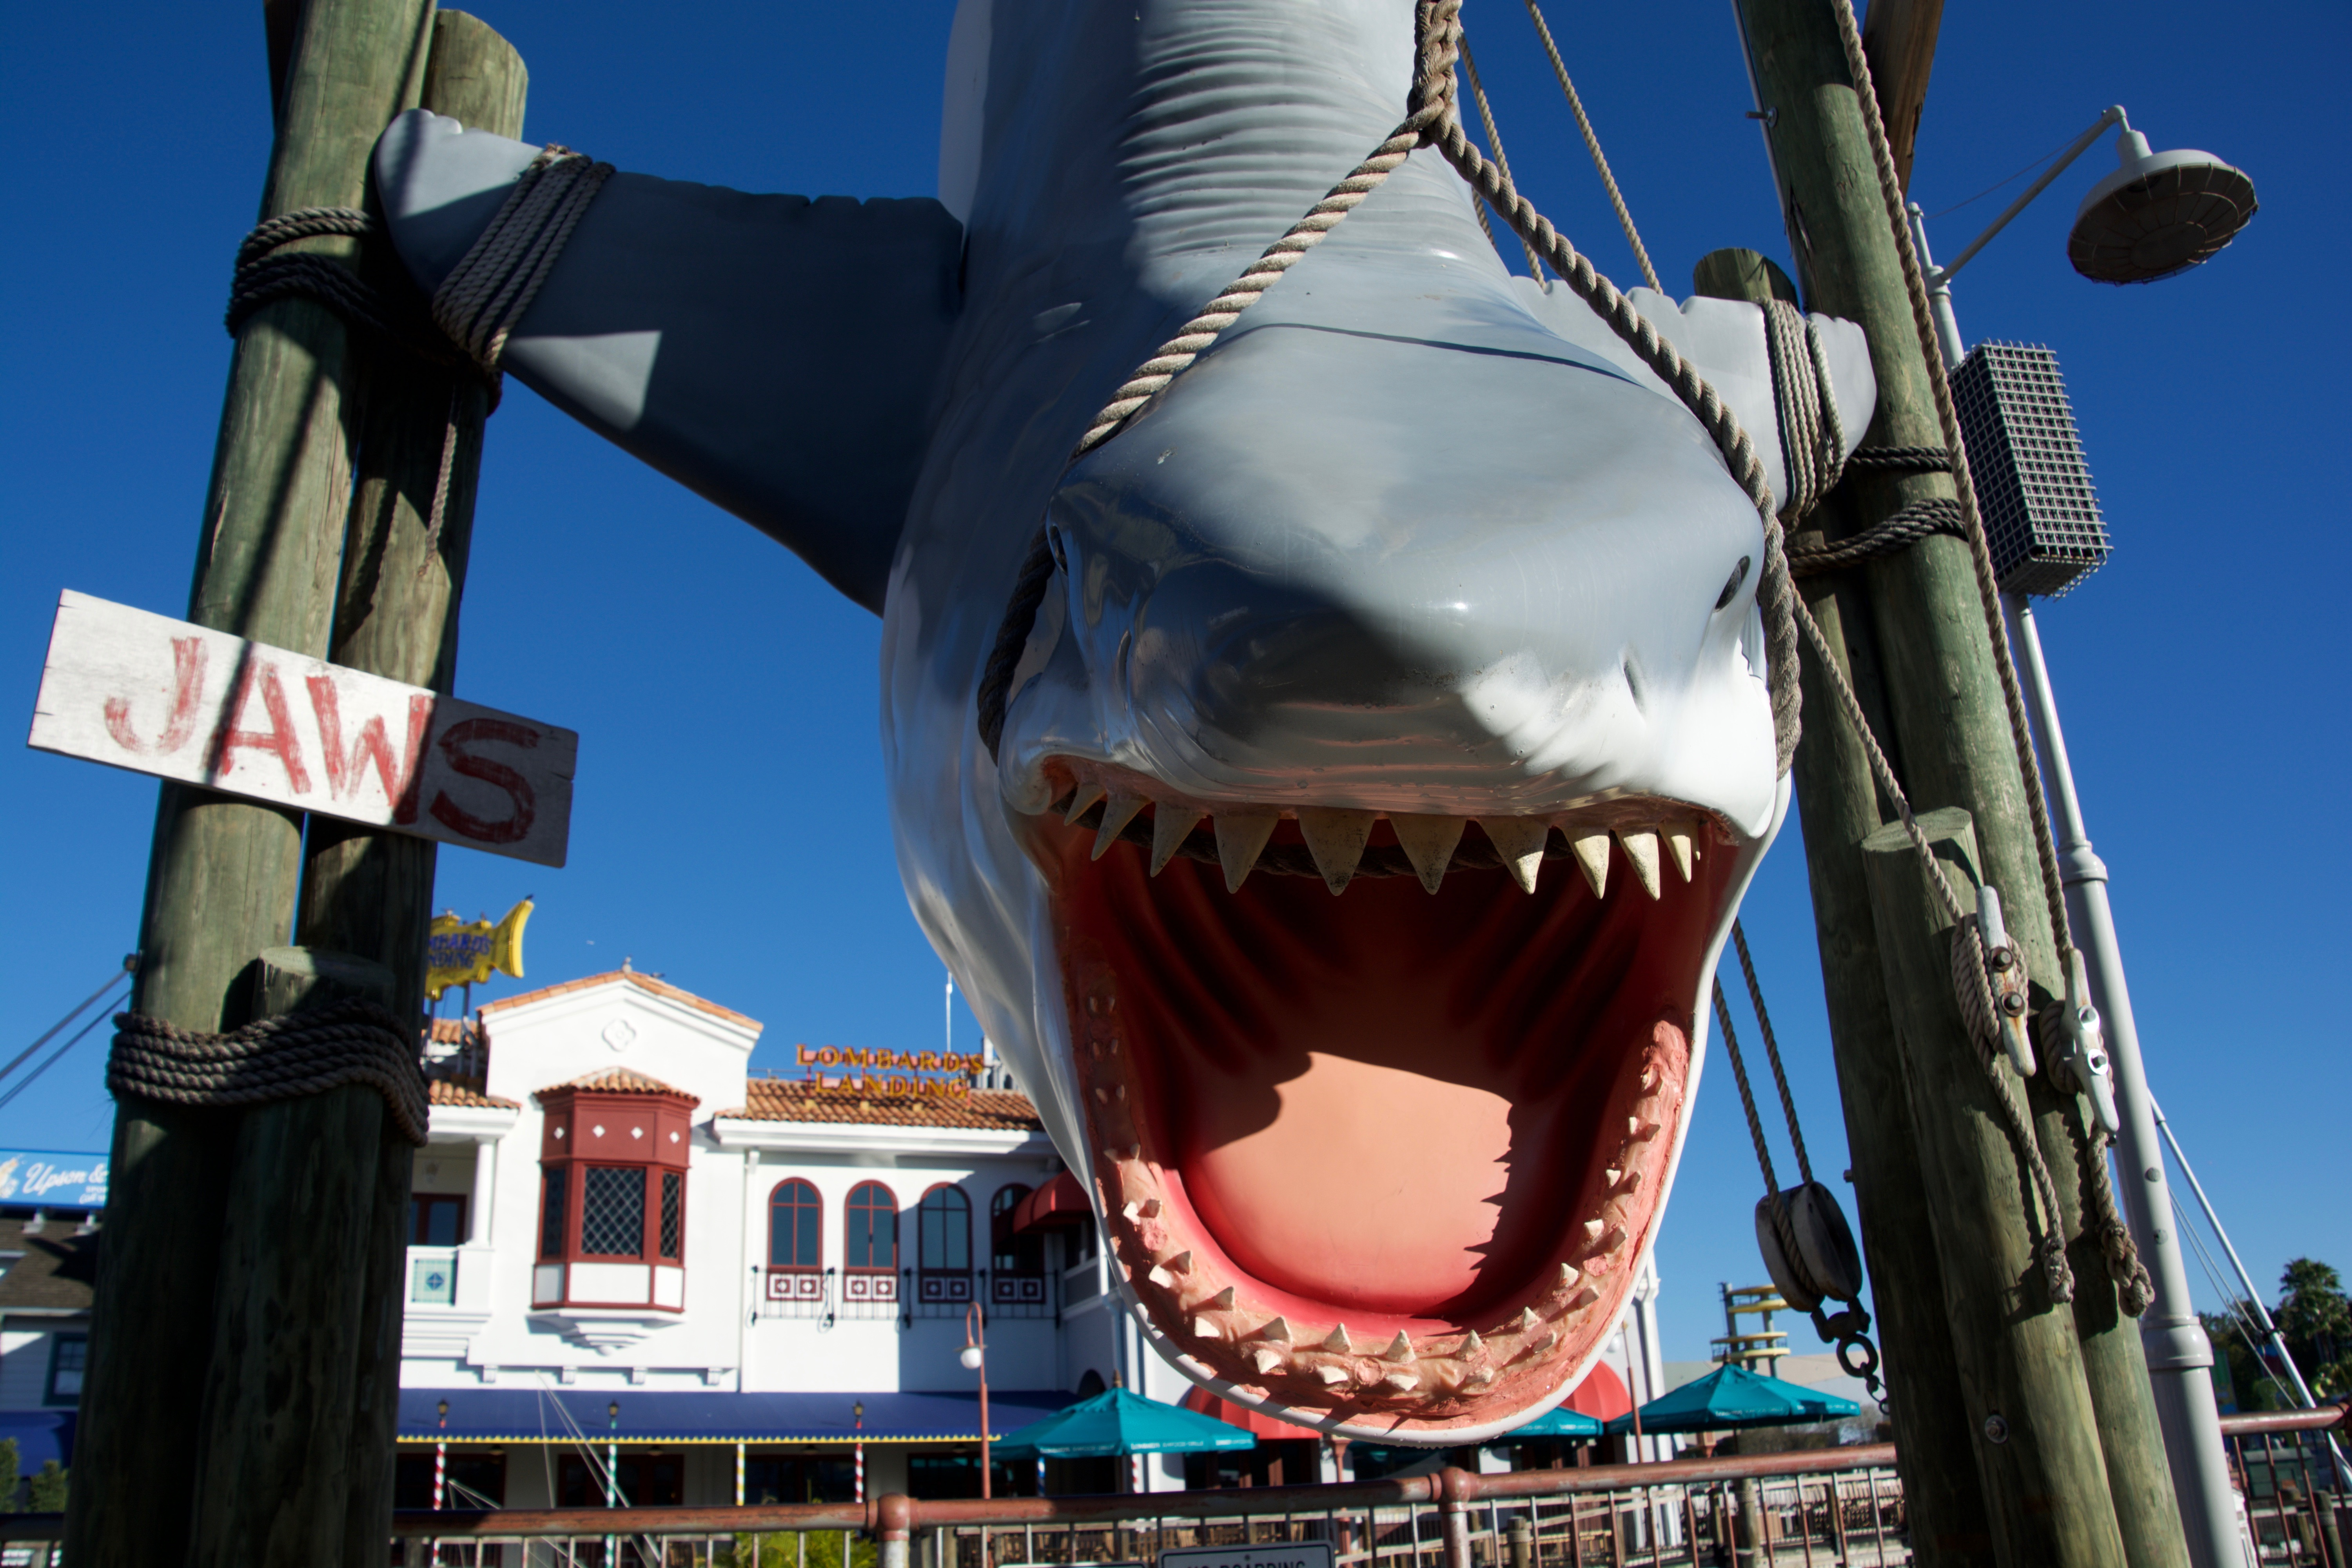 is the jaws ride still at universal